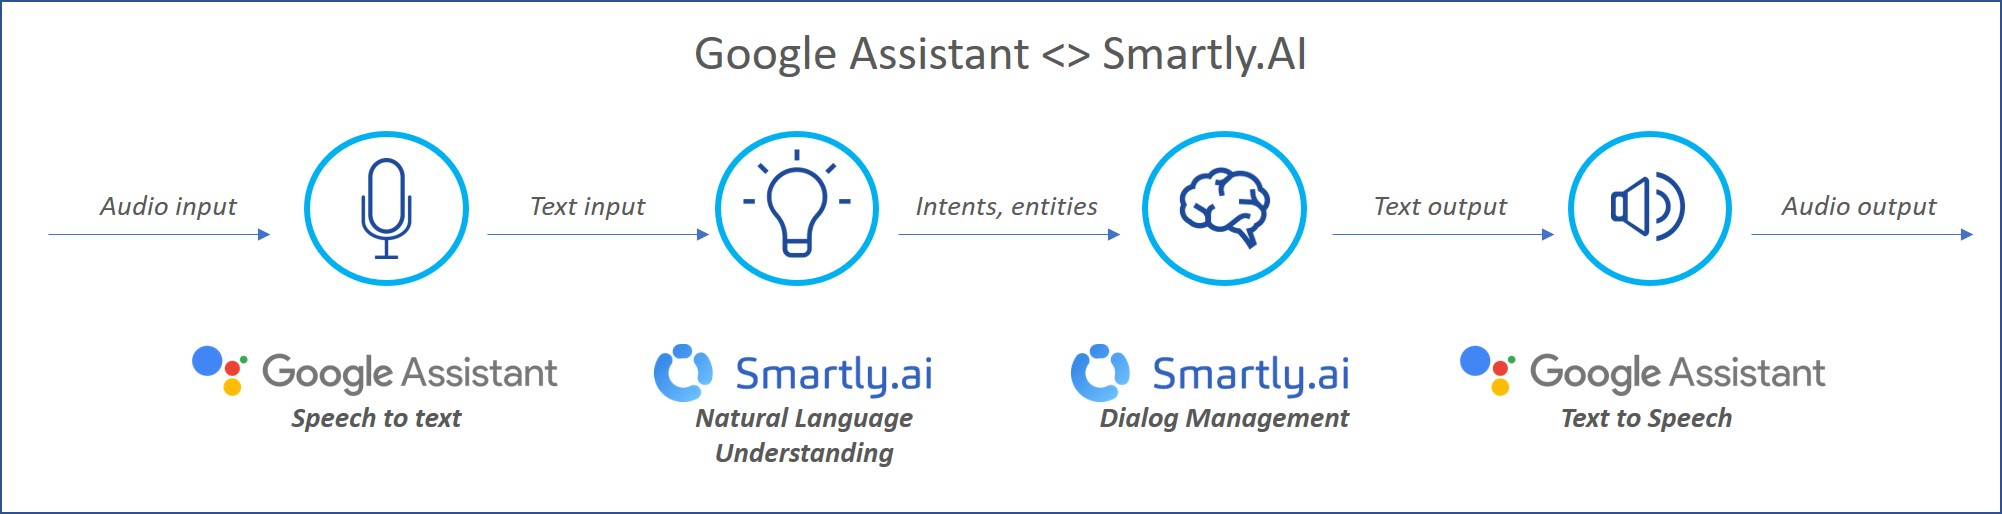 The Assistant integration